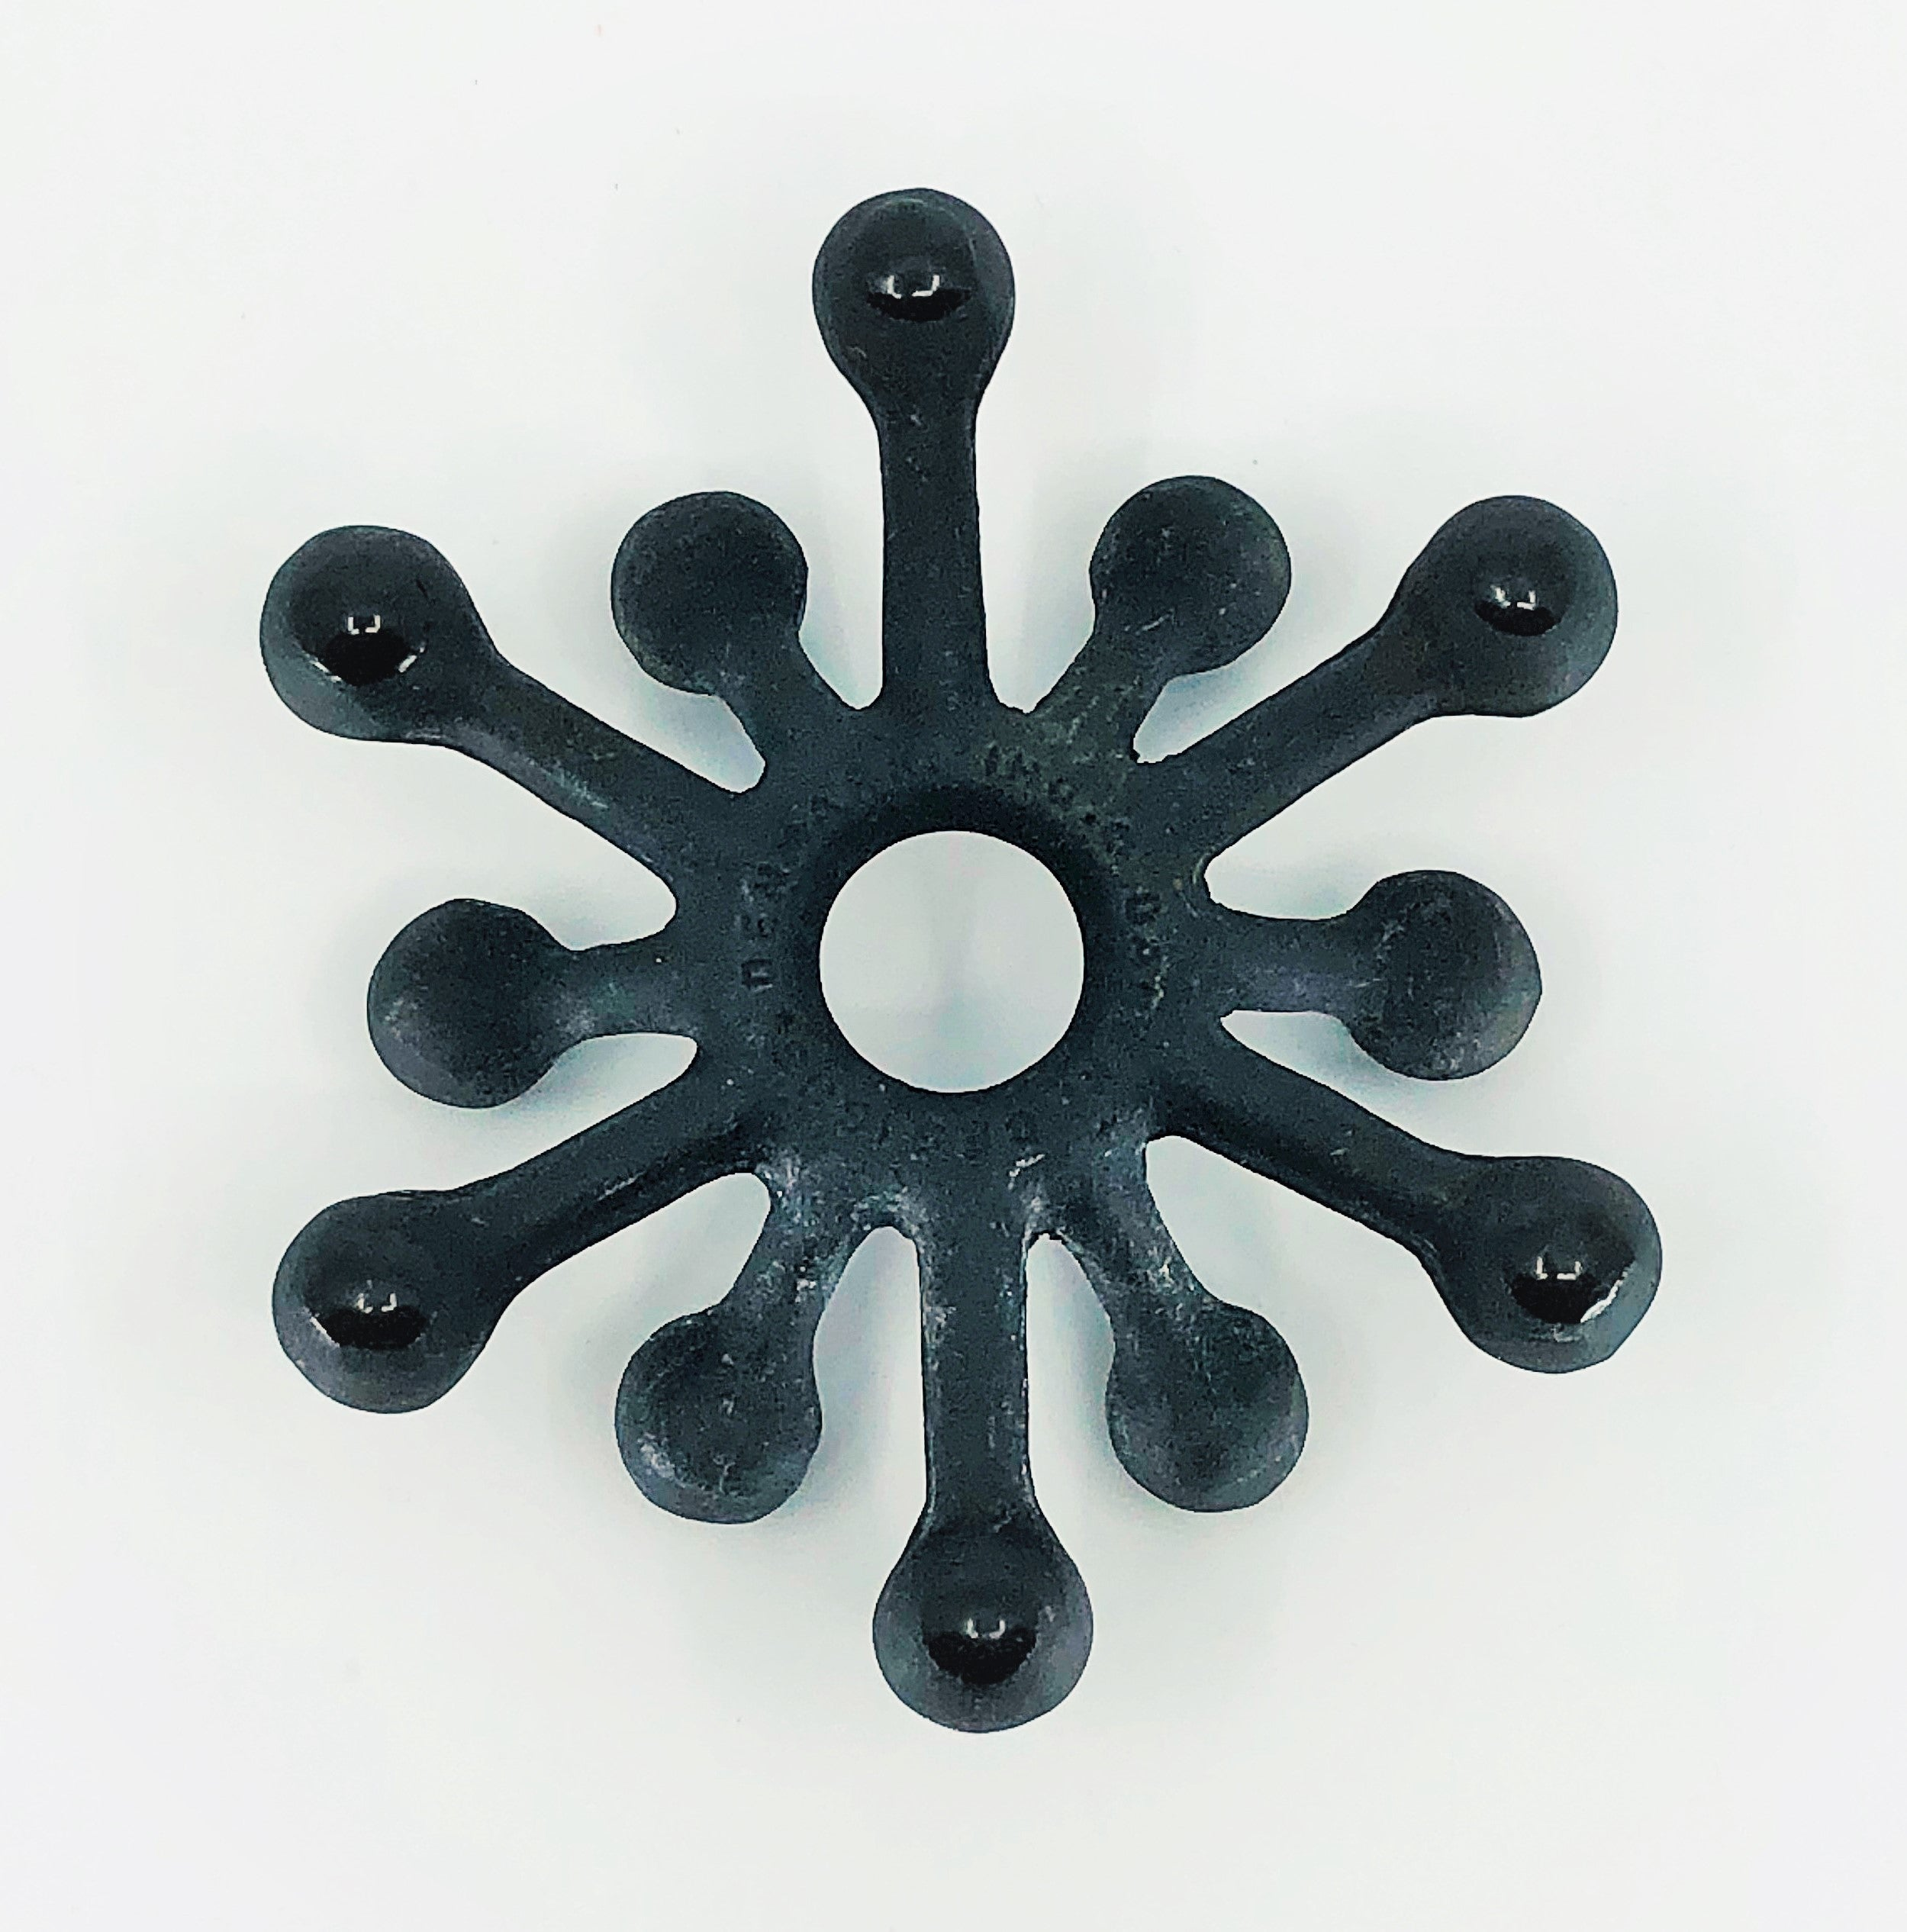 Cast Iron Dansk Spider Candle Holder, Jens Quistgaard Design